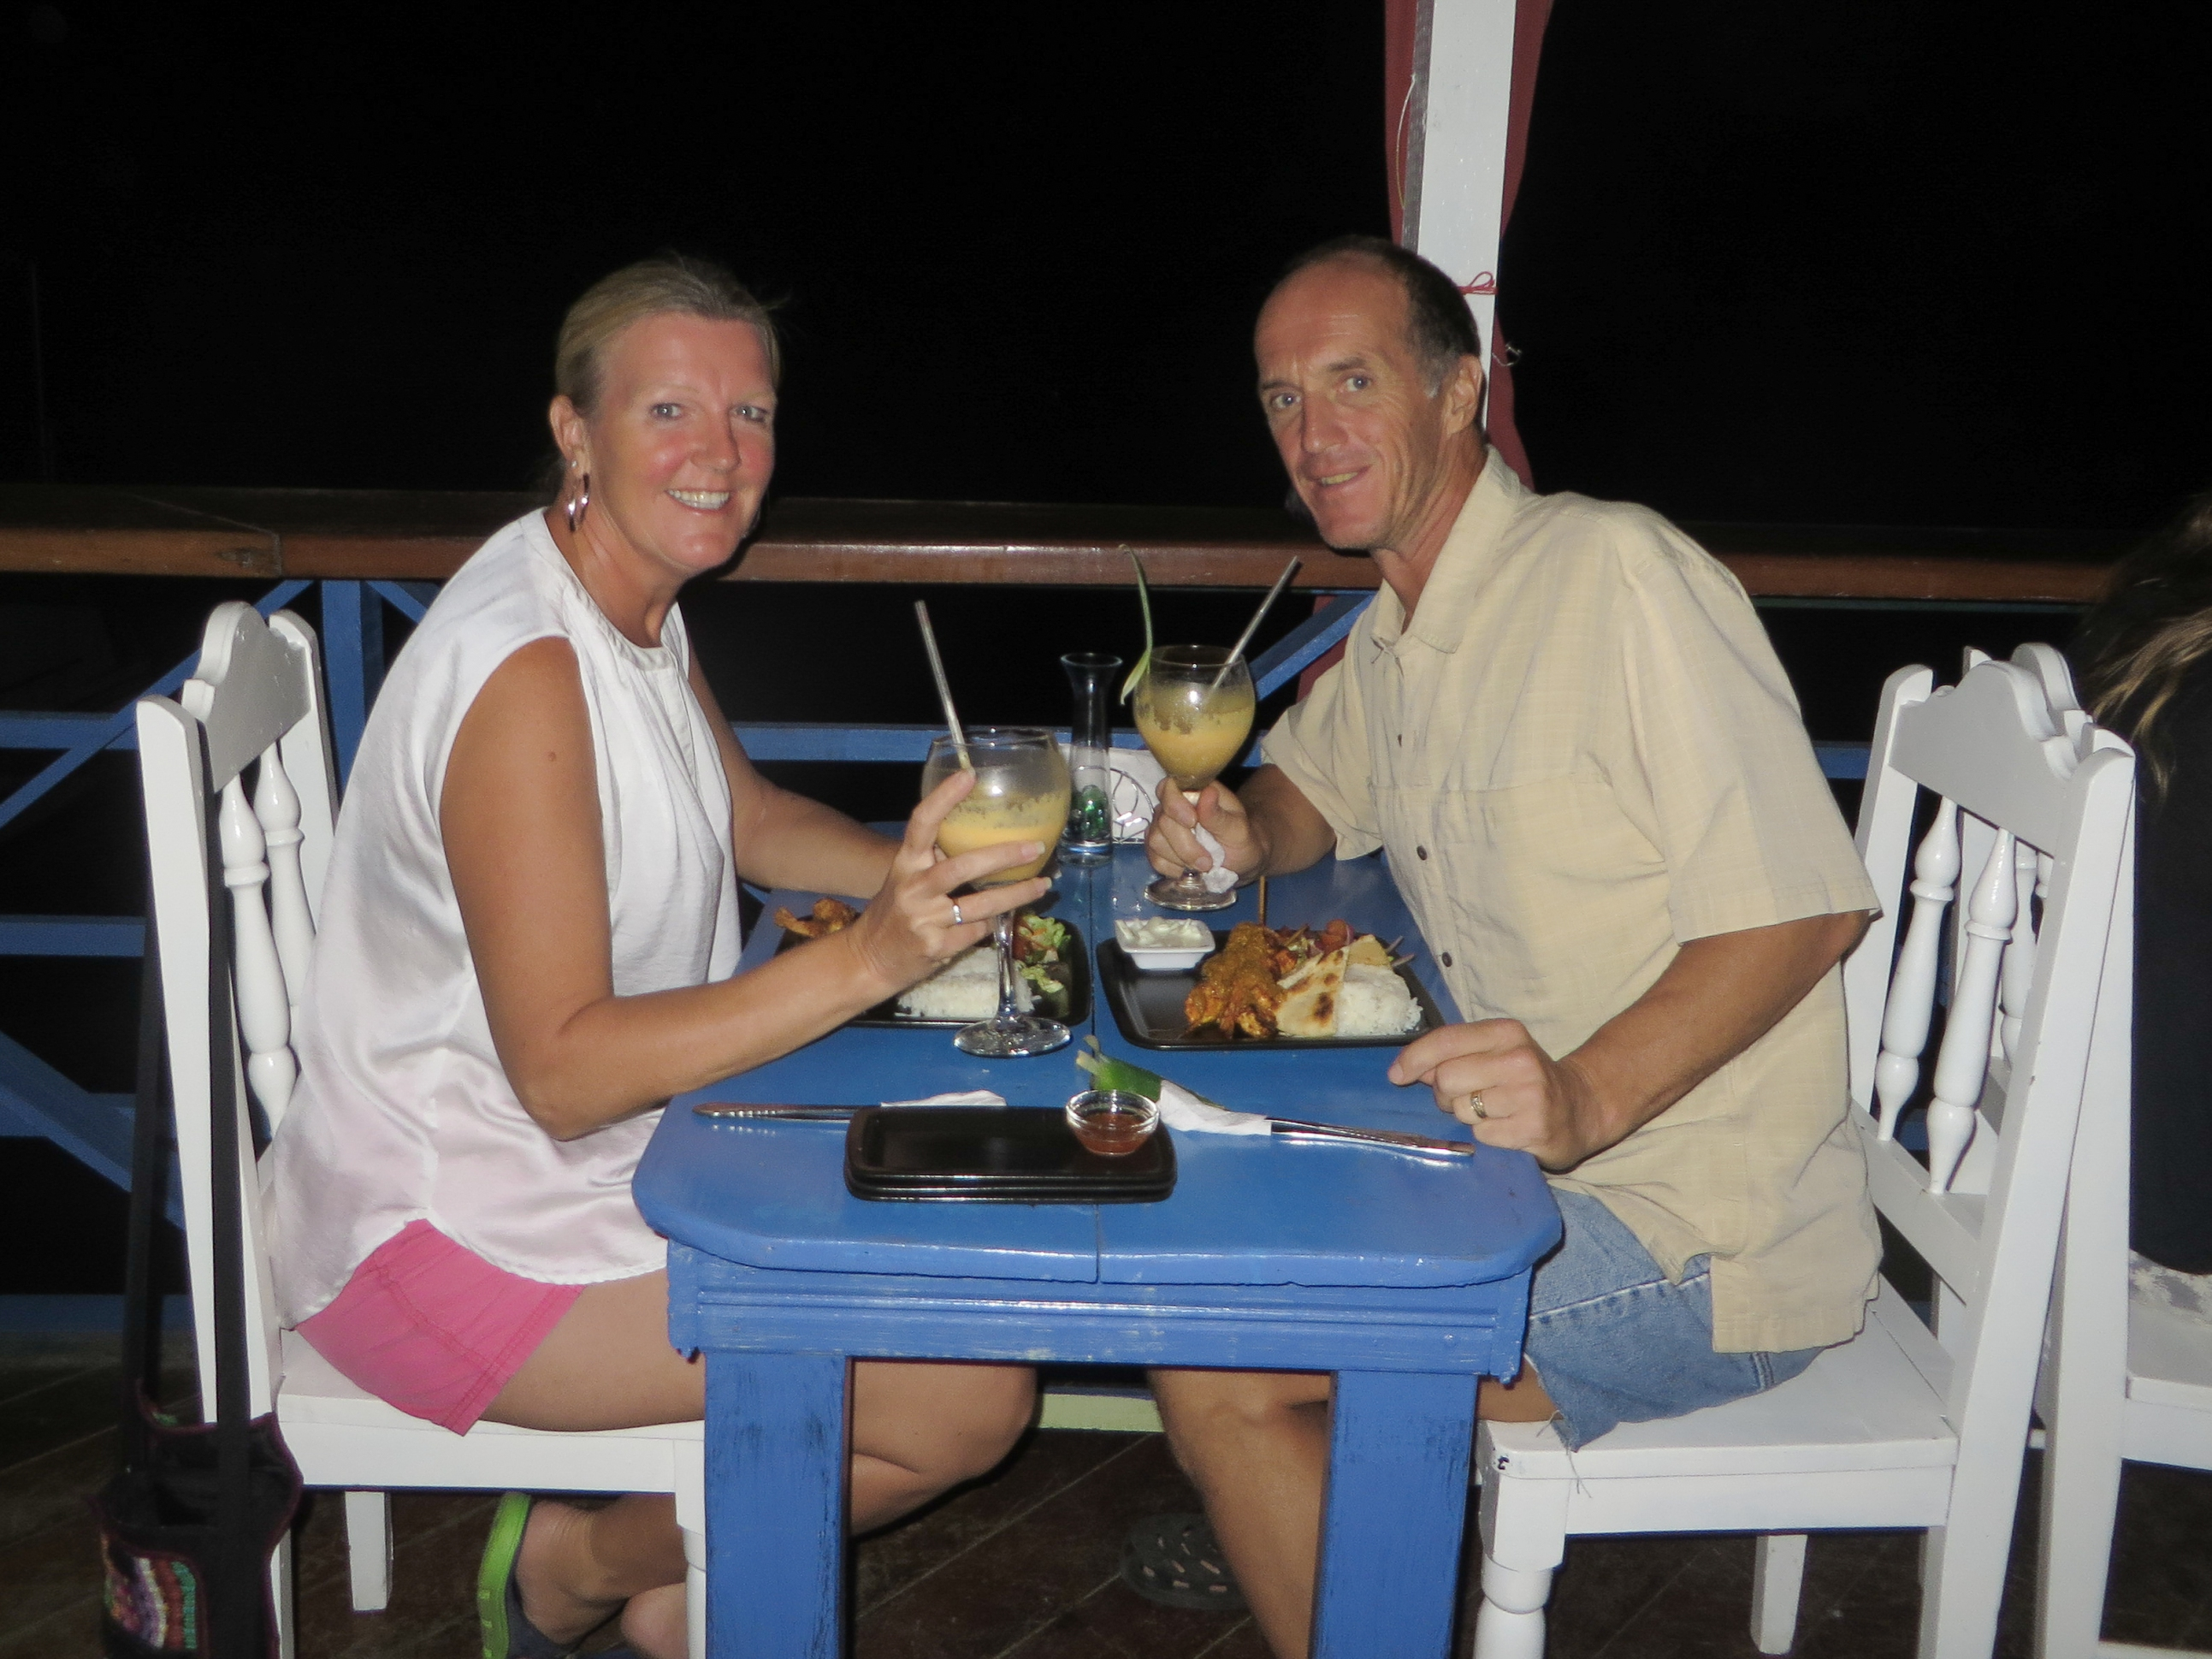 Dinner at Mariposa in Bocas del Toro